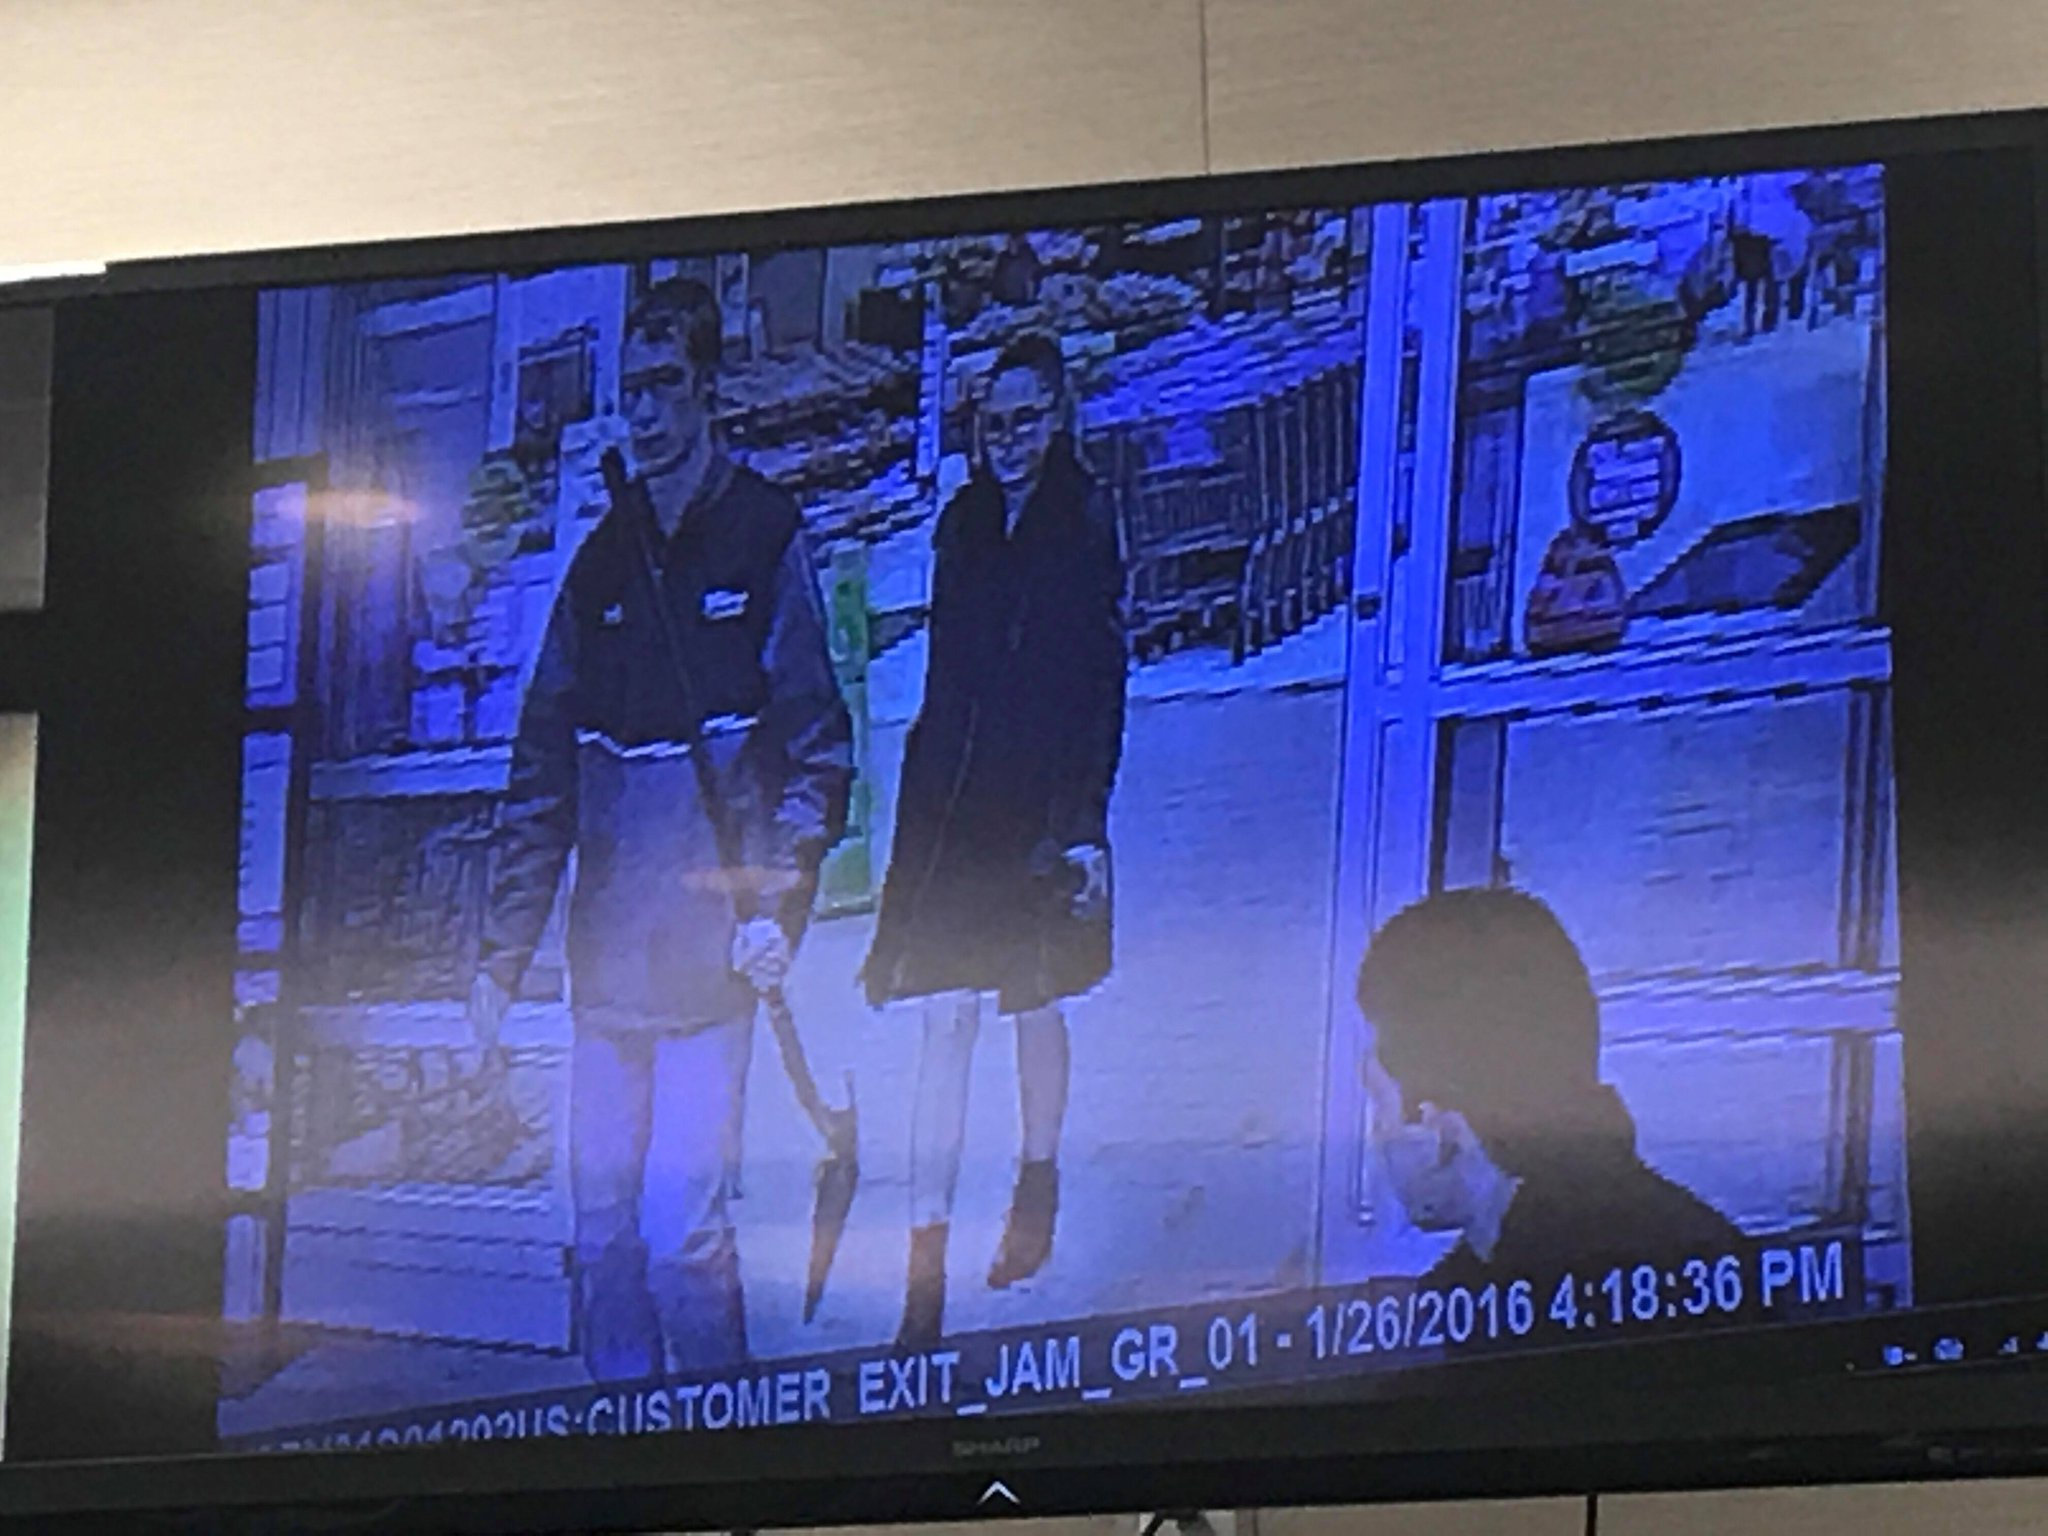 Detective Twigger testified that these pictures are from the Walmart in Christiansburg. They show Eisenhauer and Natalie Keepers going into the store and buying a shovel. They are also on camera paying cash for the shovel.<p></p>